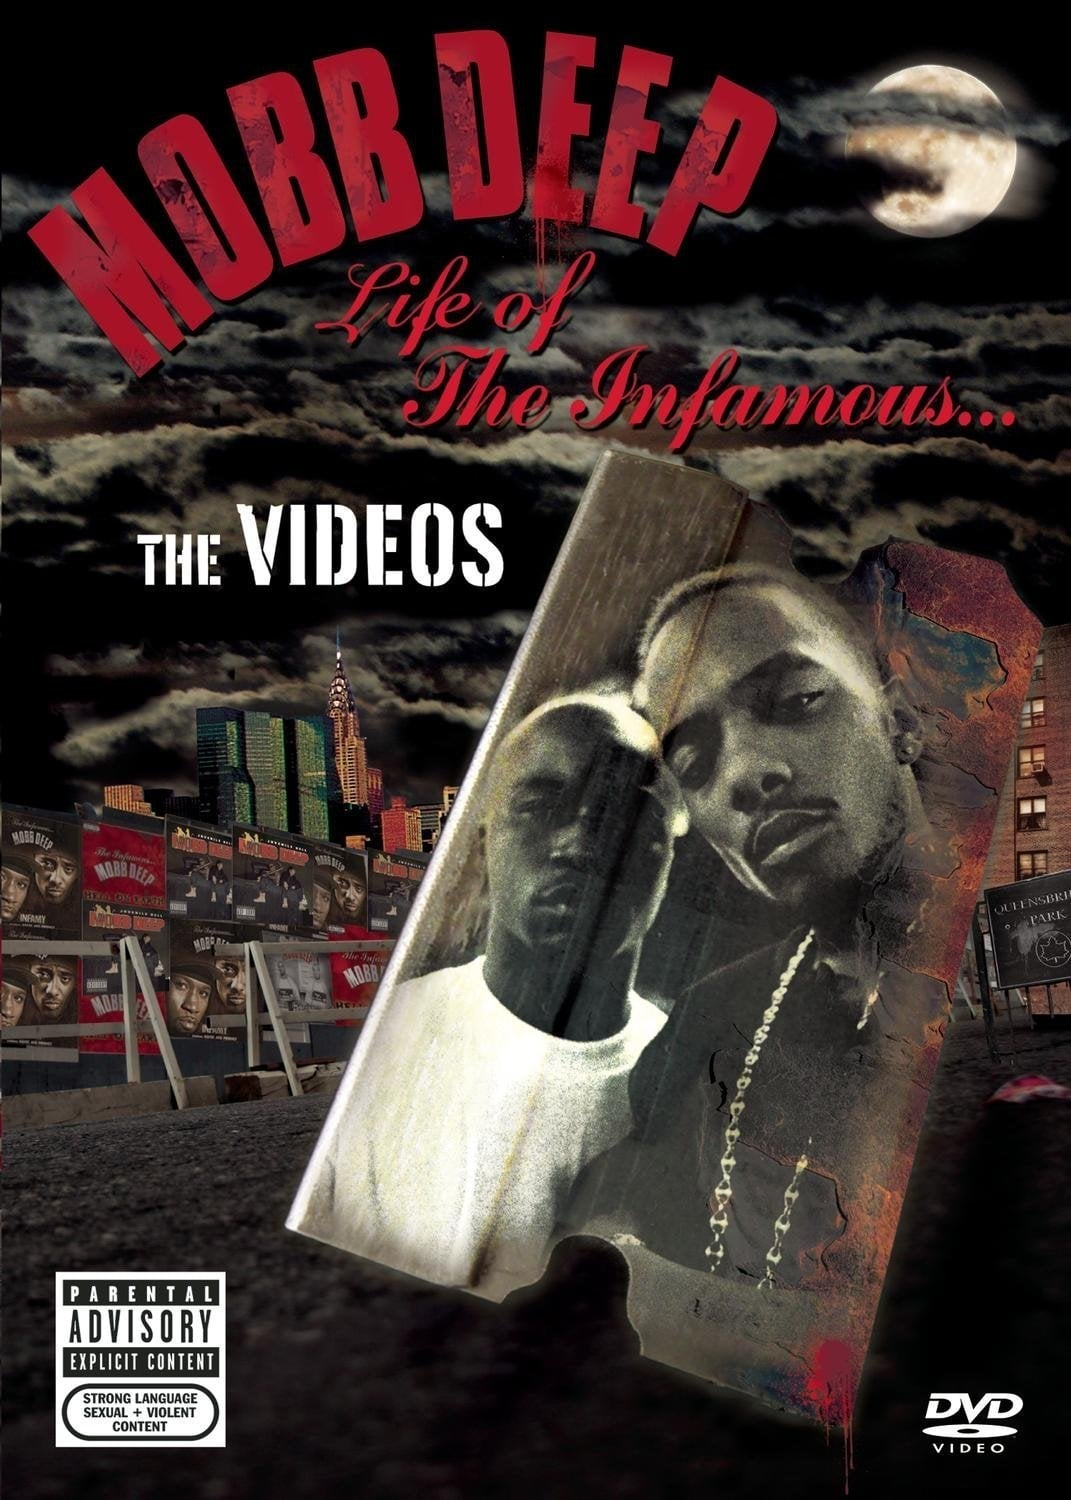 Mobb Deep - Life of the Infamous: The Videos